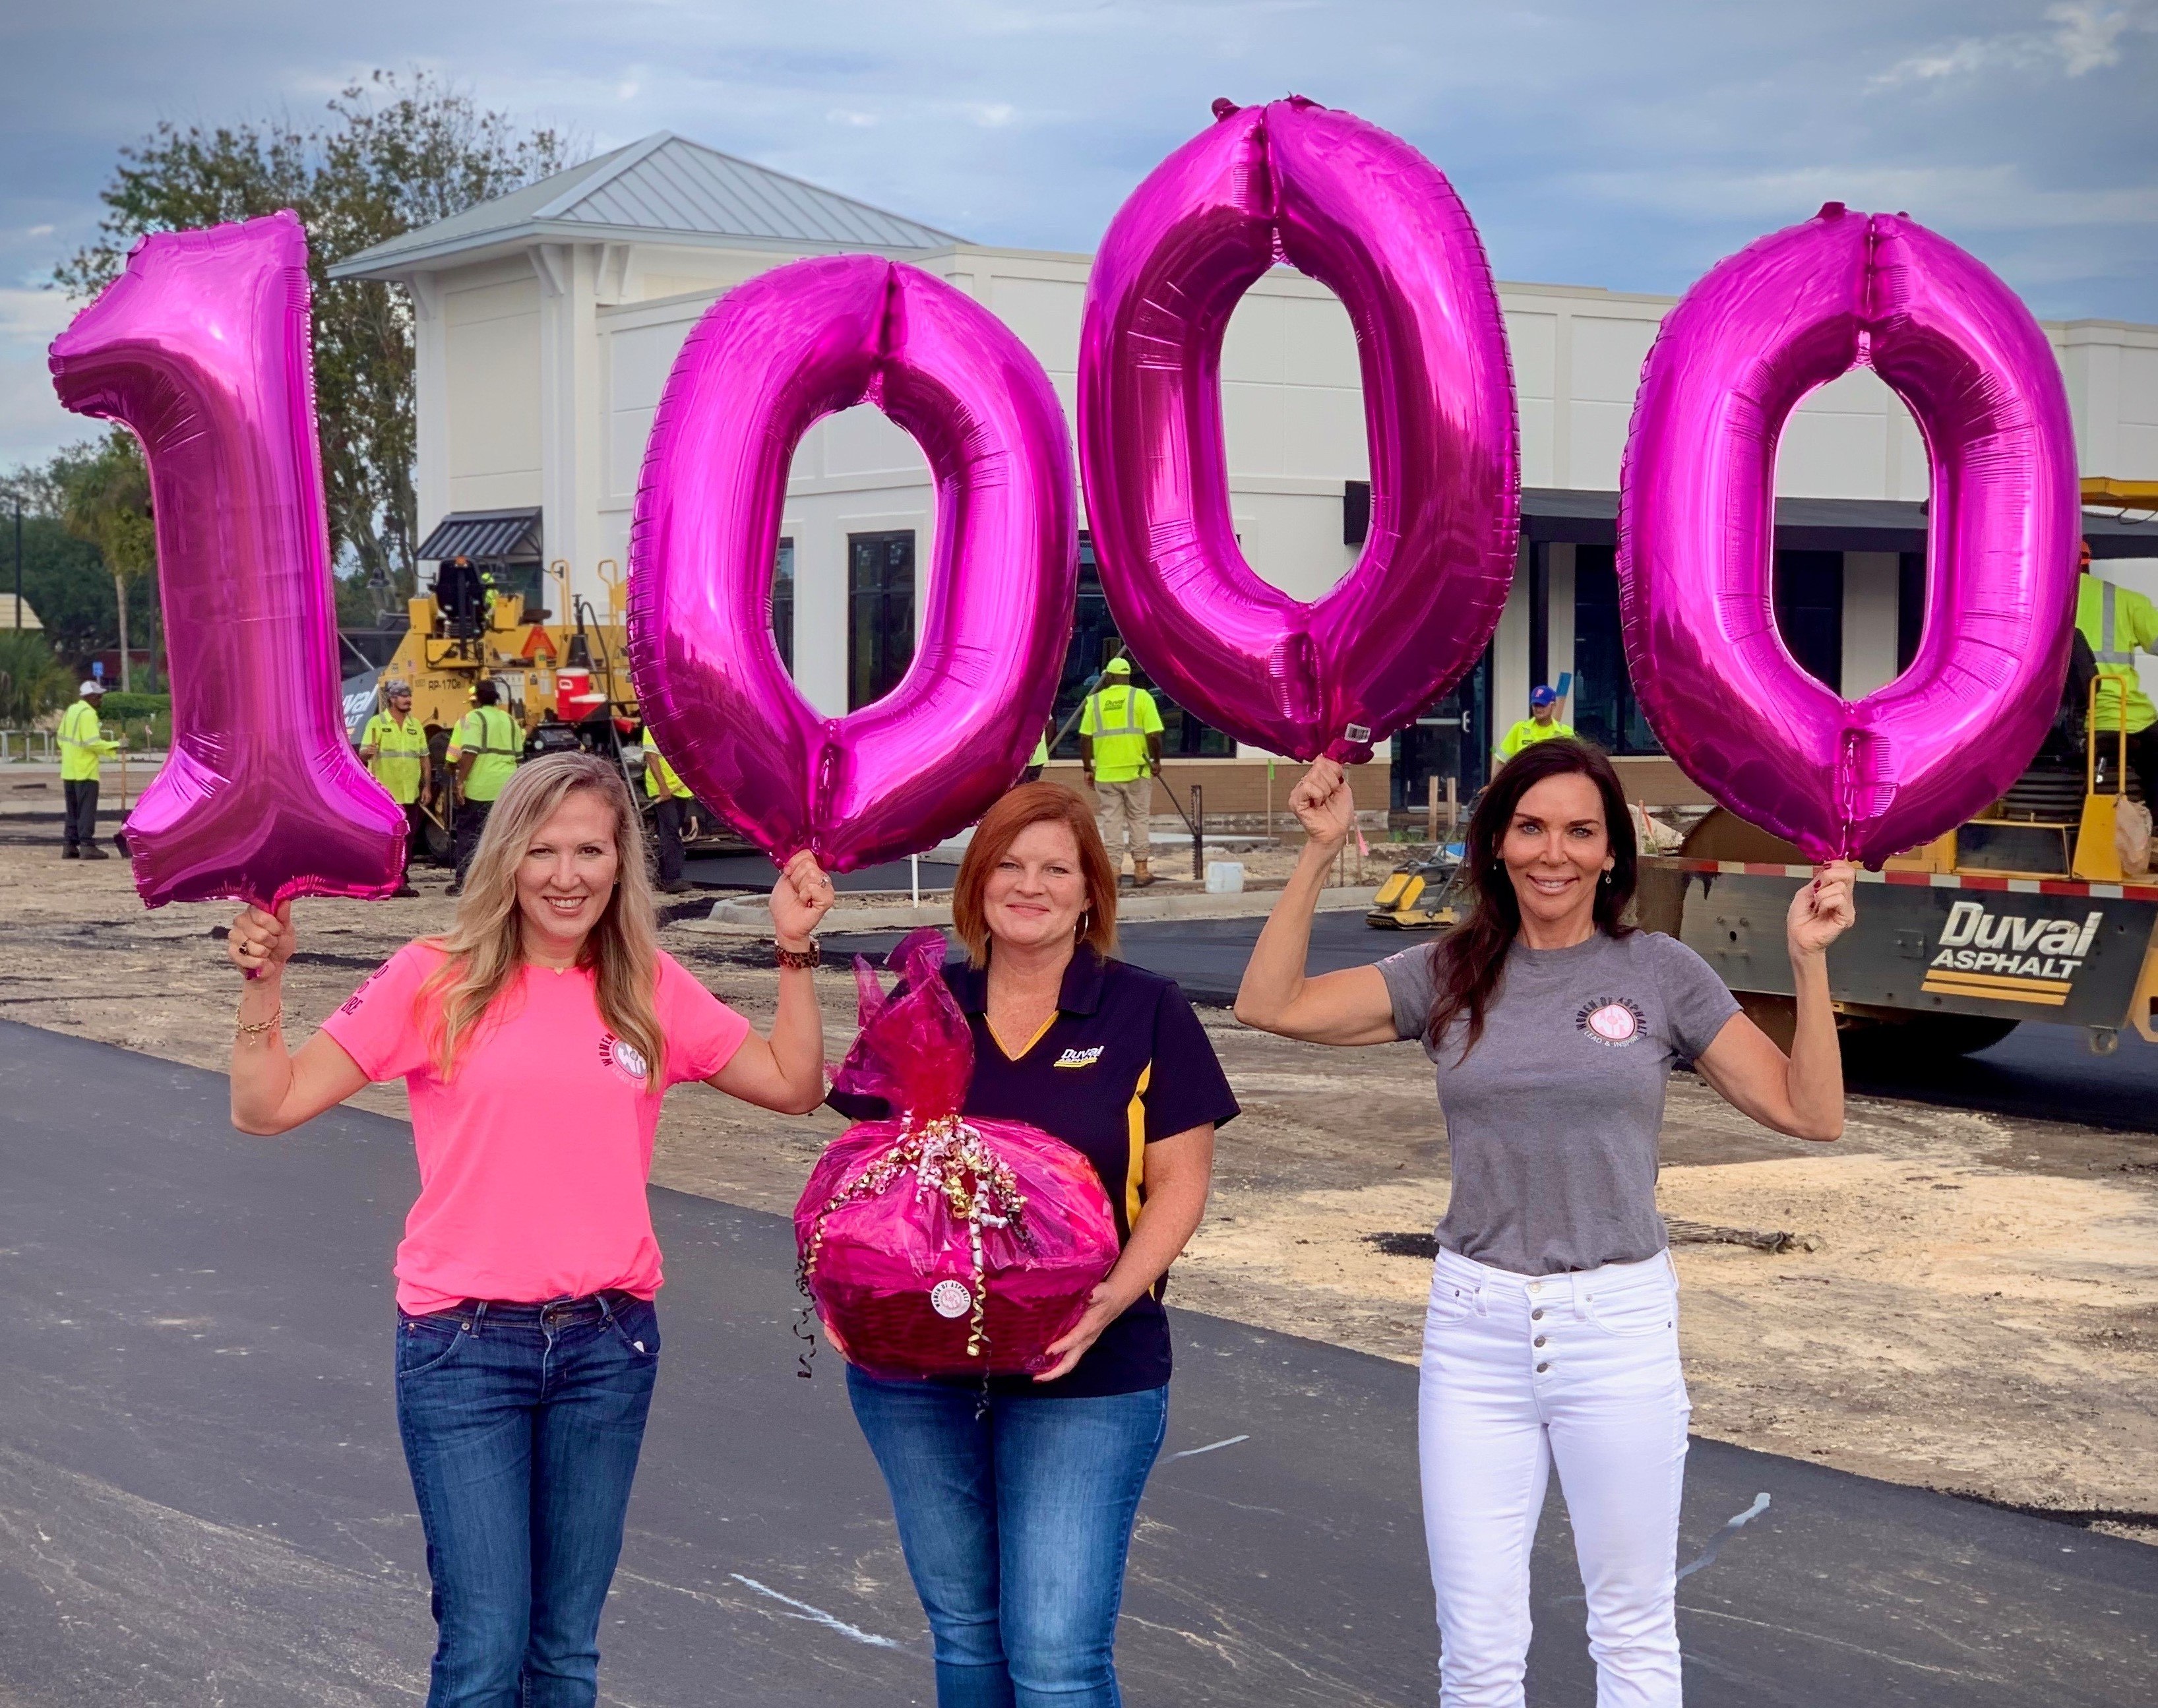 Amy Miller (L) and Natasha Ozybko (R) surprising WofA's 1,000th member Marsha Johnson (C) at her jobsite.